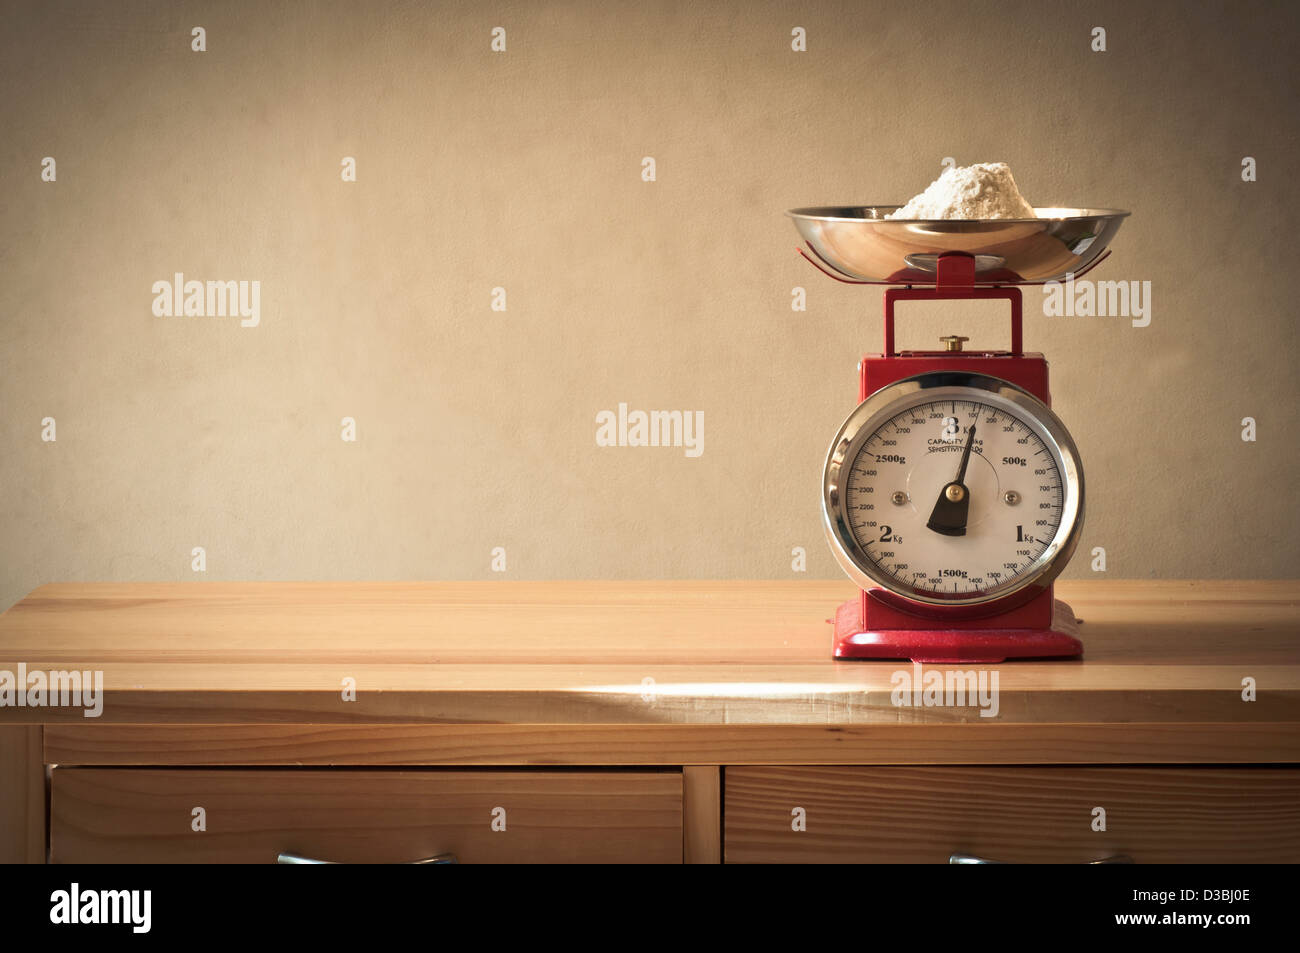 Retro kitchen scales Stock Photo